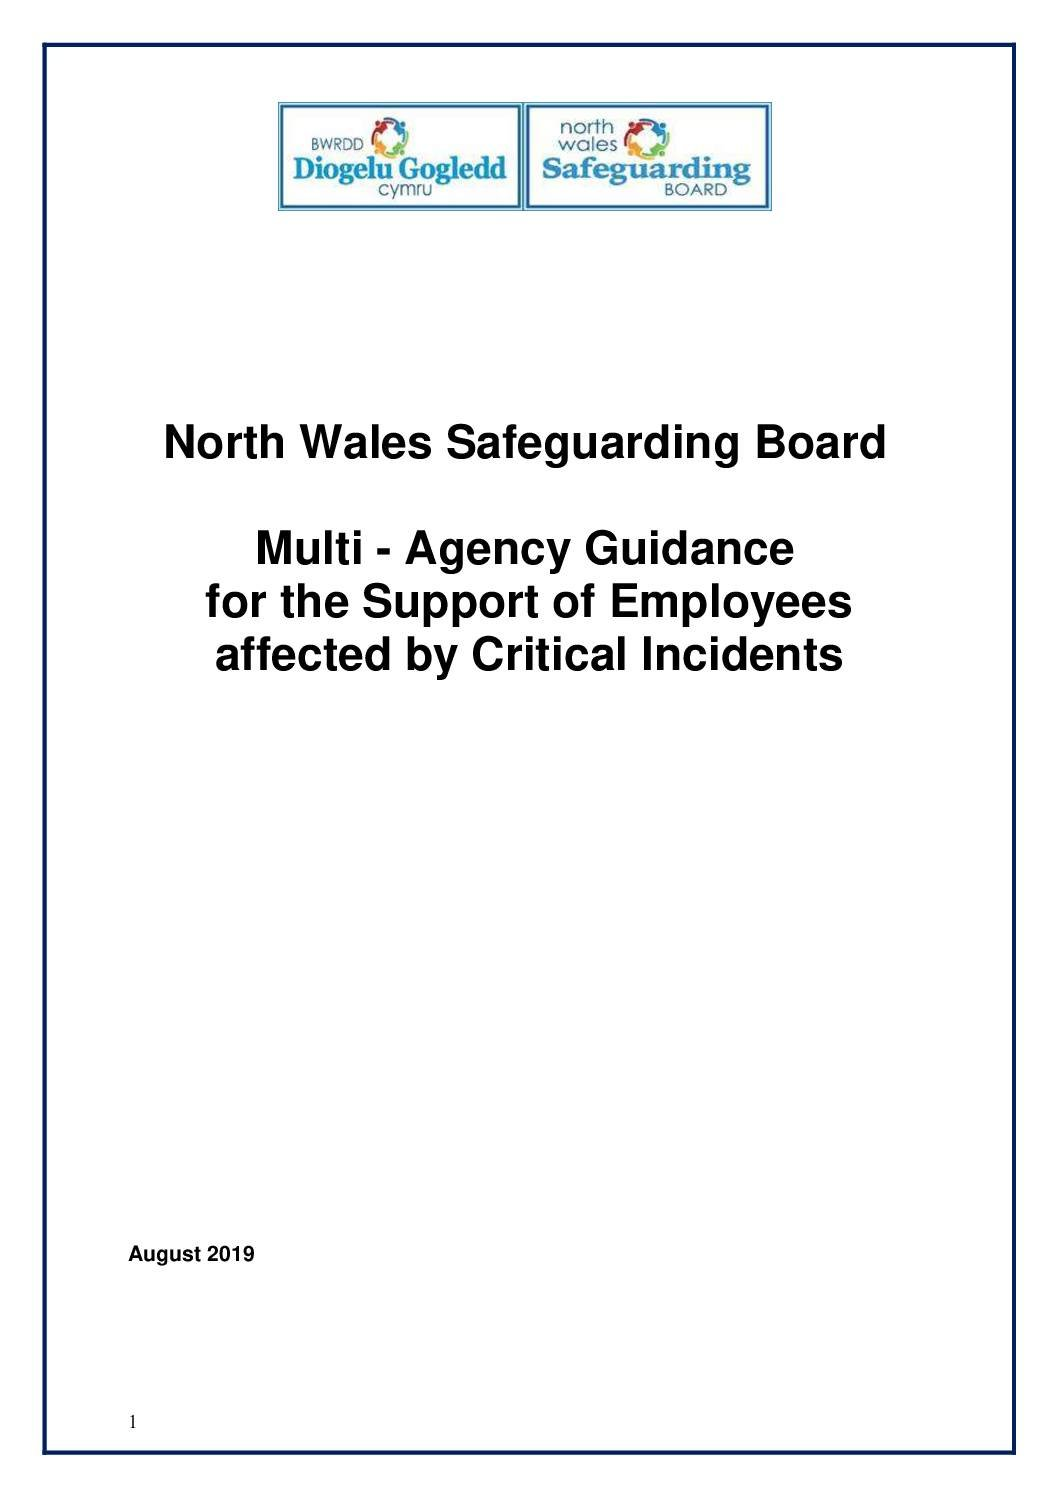 Multi – Agency Guidance  for the Support of Employees affected by Critical Incidents